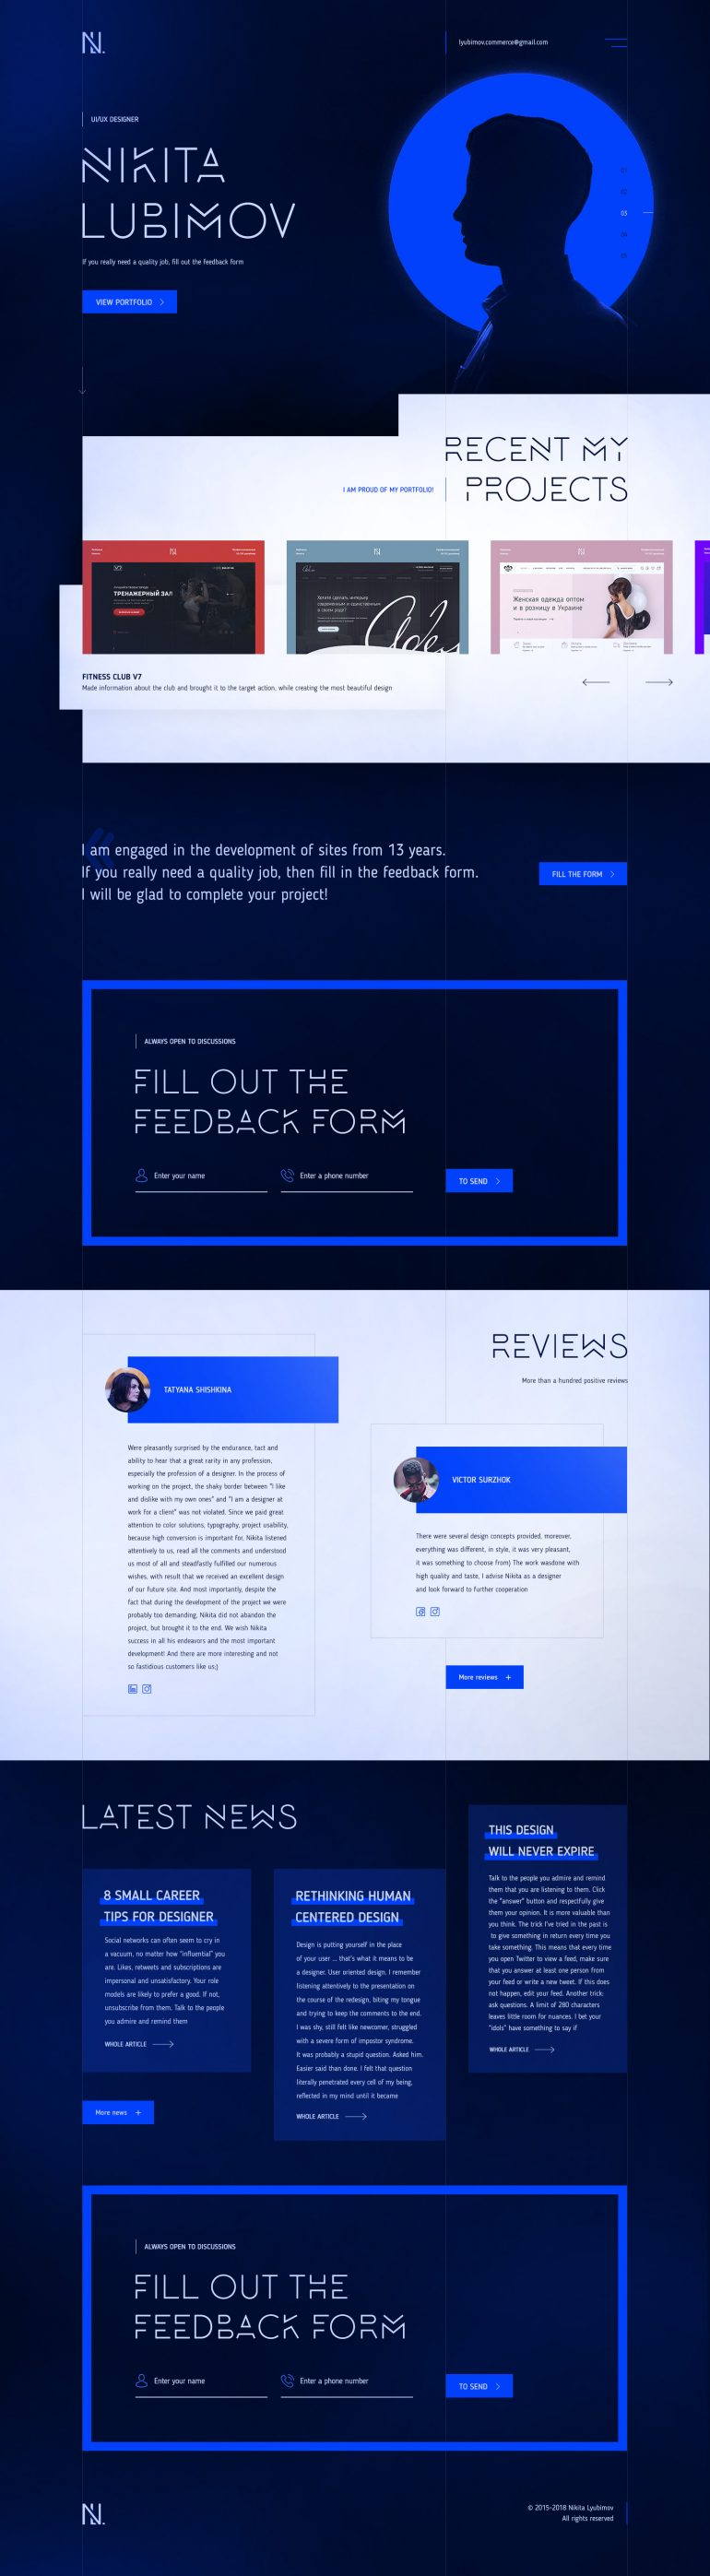 PSD TEMPLATE / LANDING PAGE